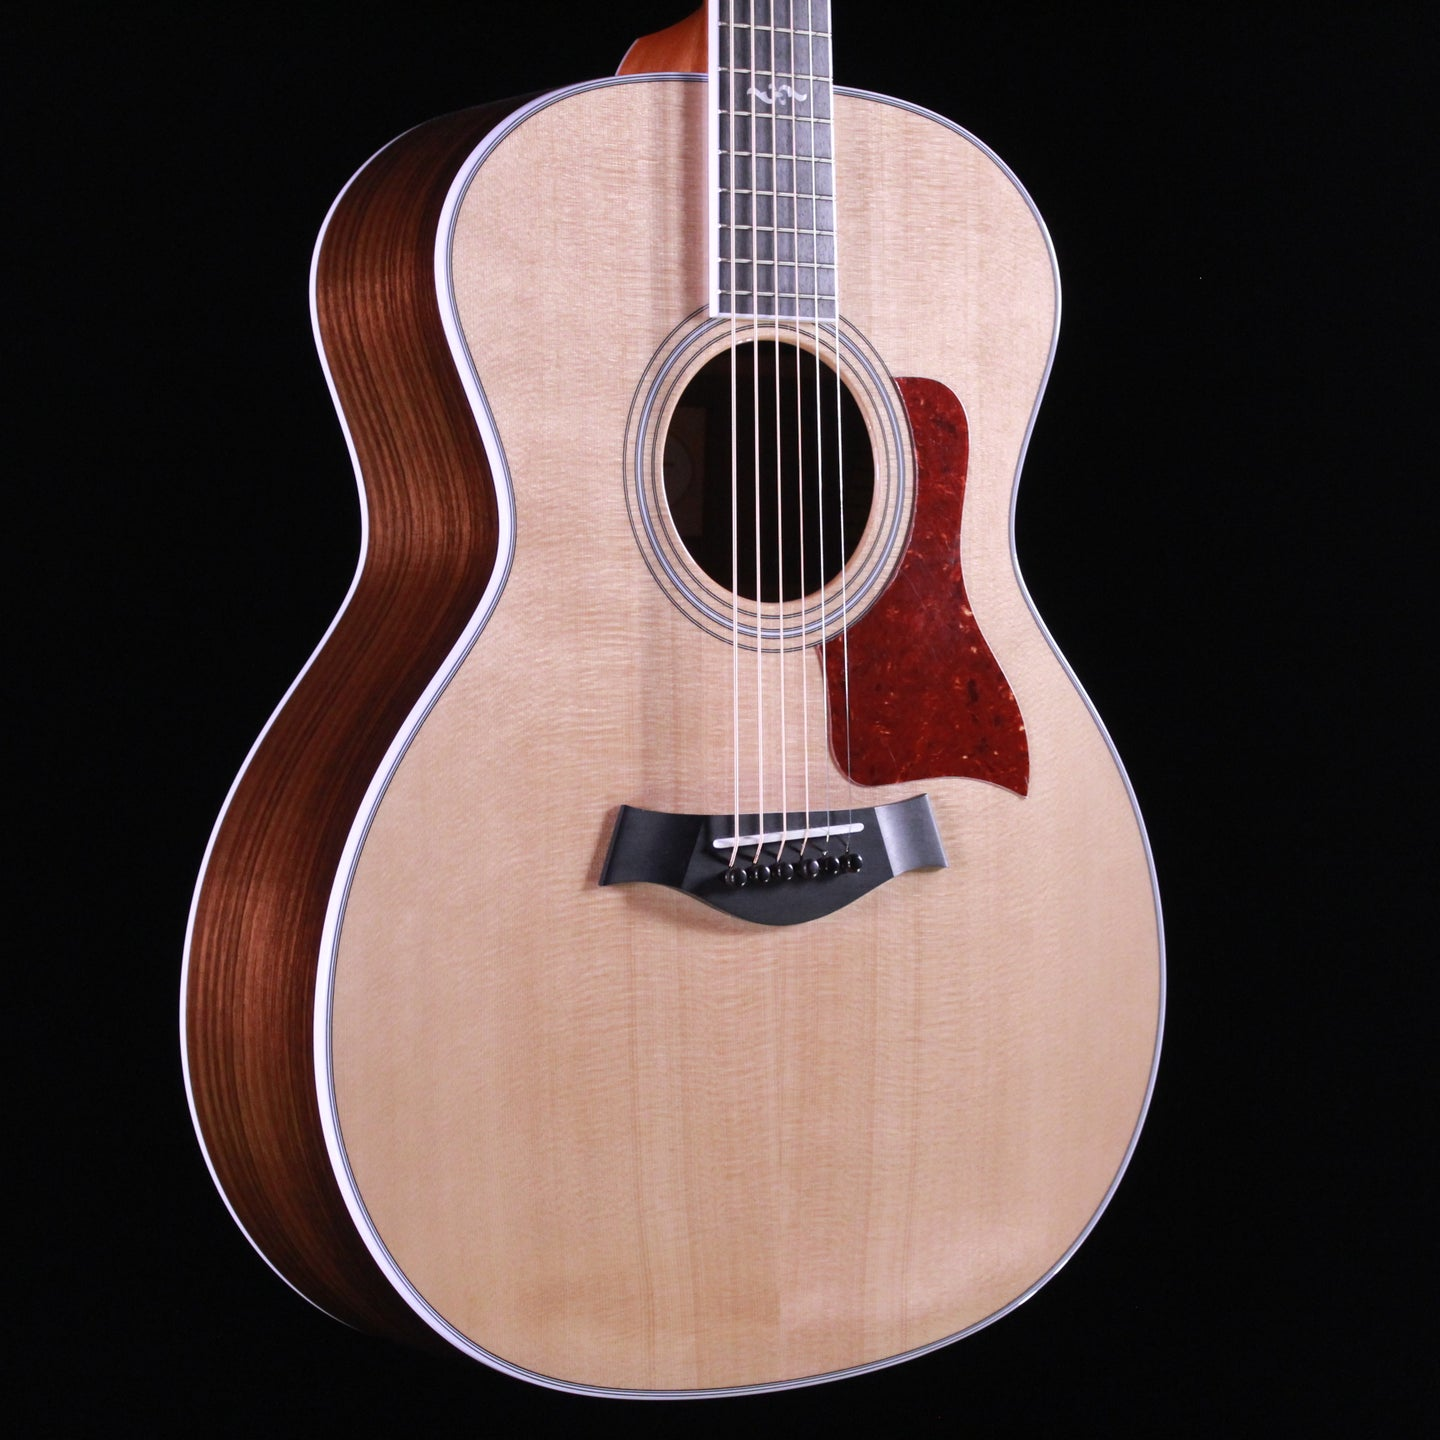 Taylor 414-R (Rosewood/Sitka Spruce) - Express Shipping - (T-069) Serial: 1104098006 - PLEK'd